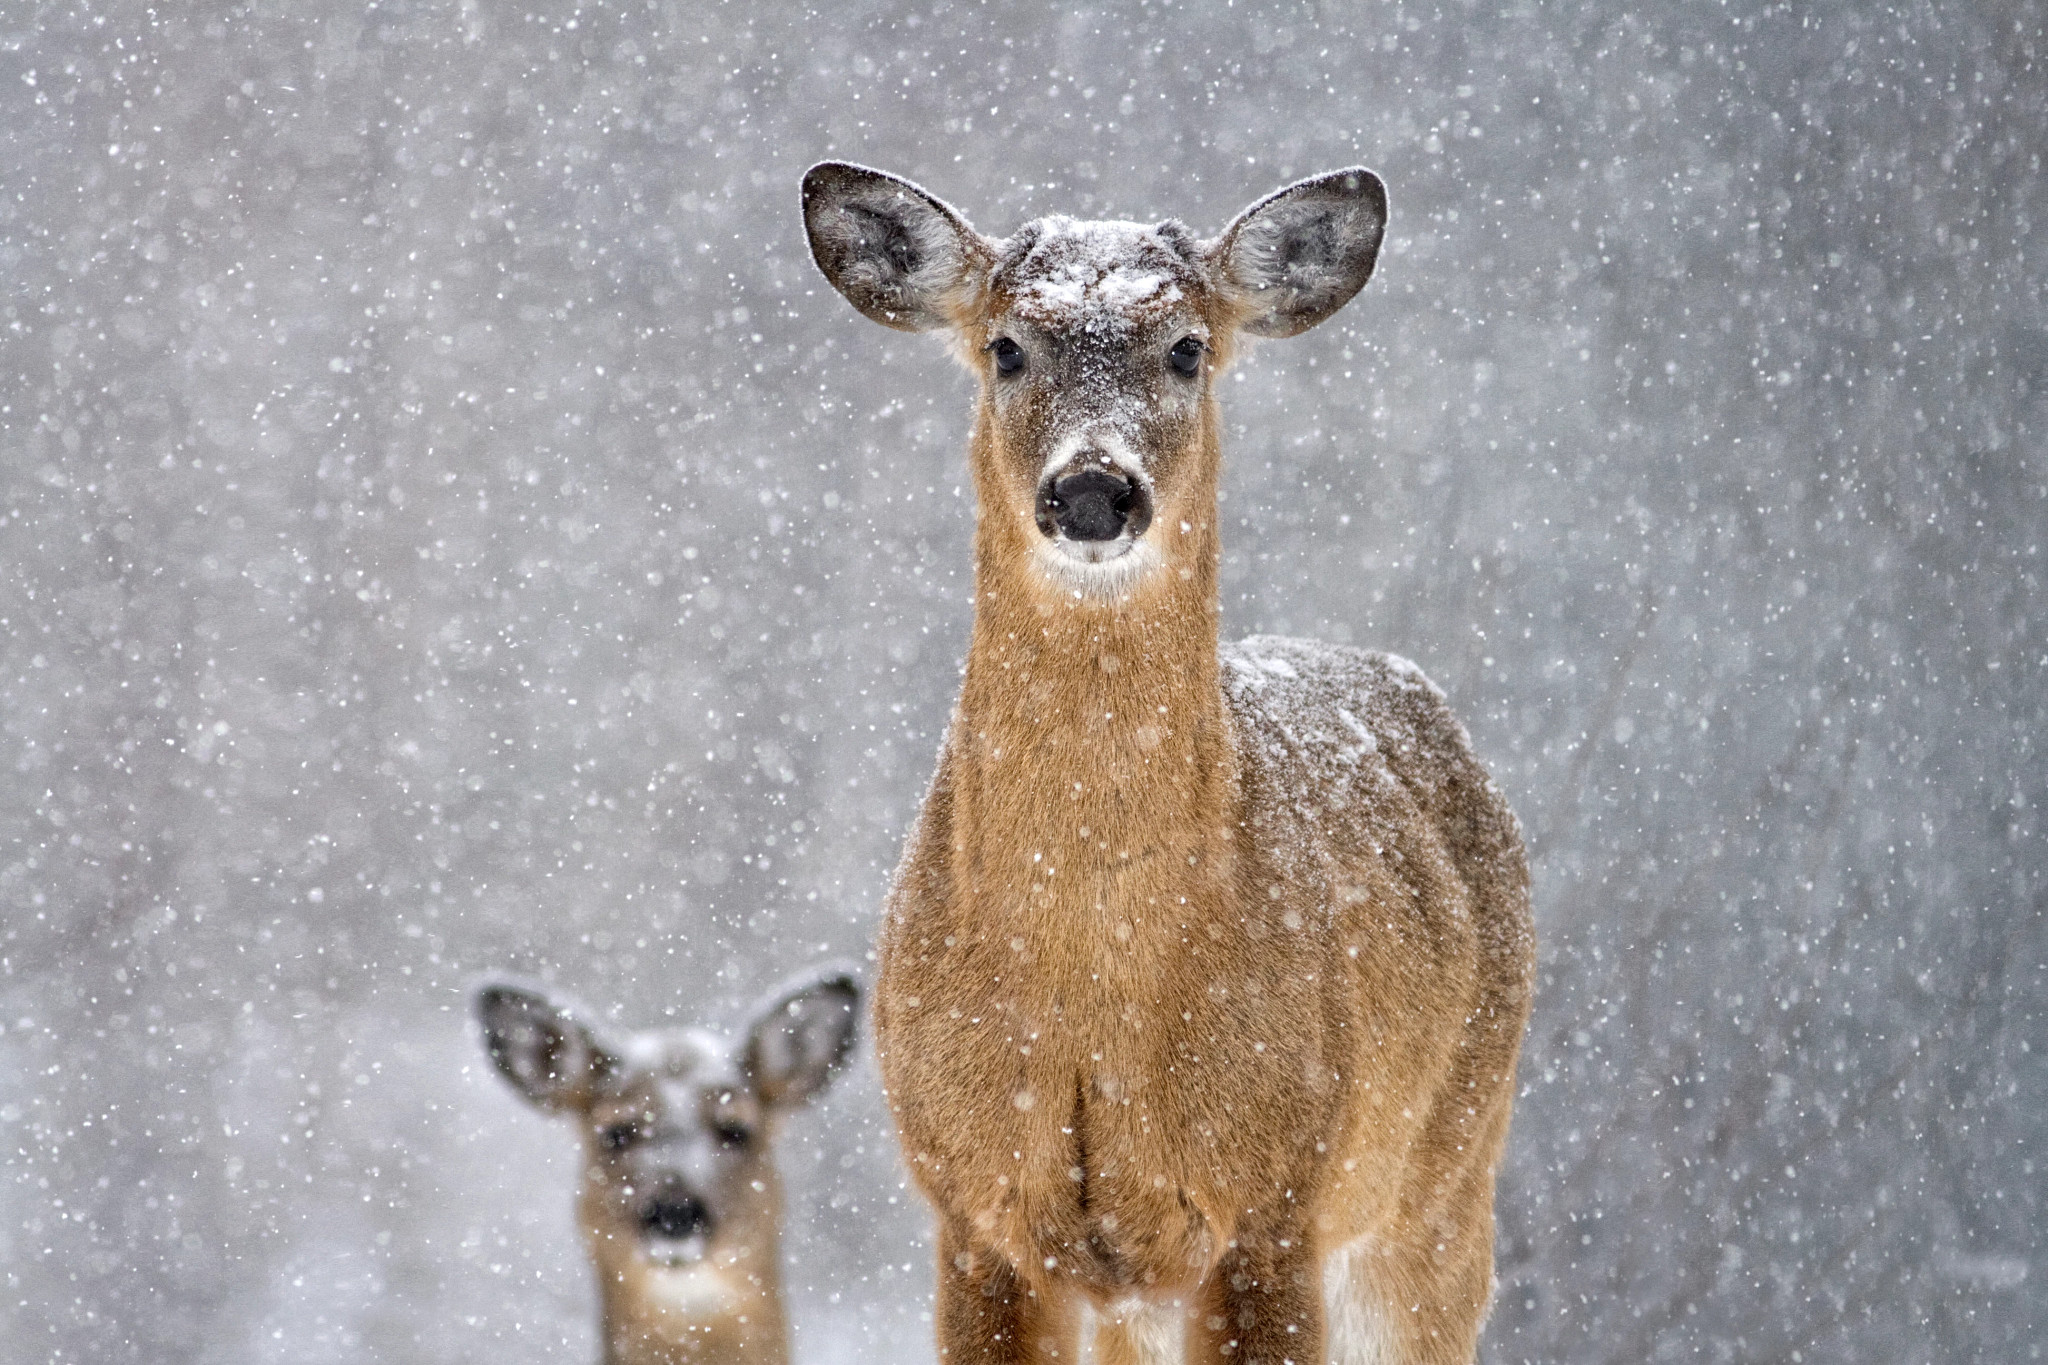 Two deer in the snow.